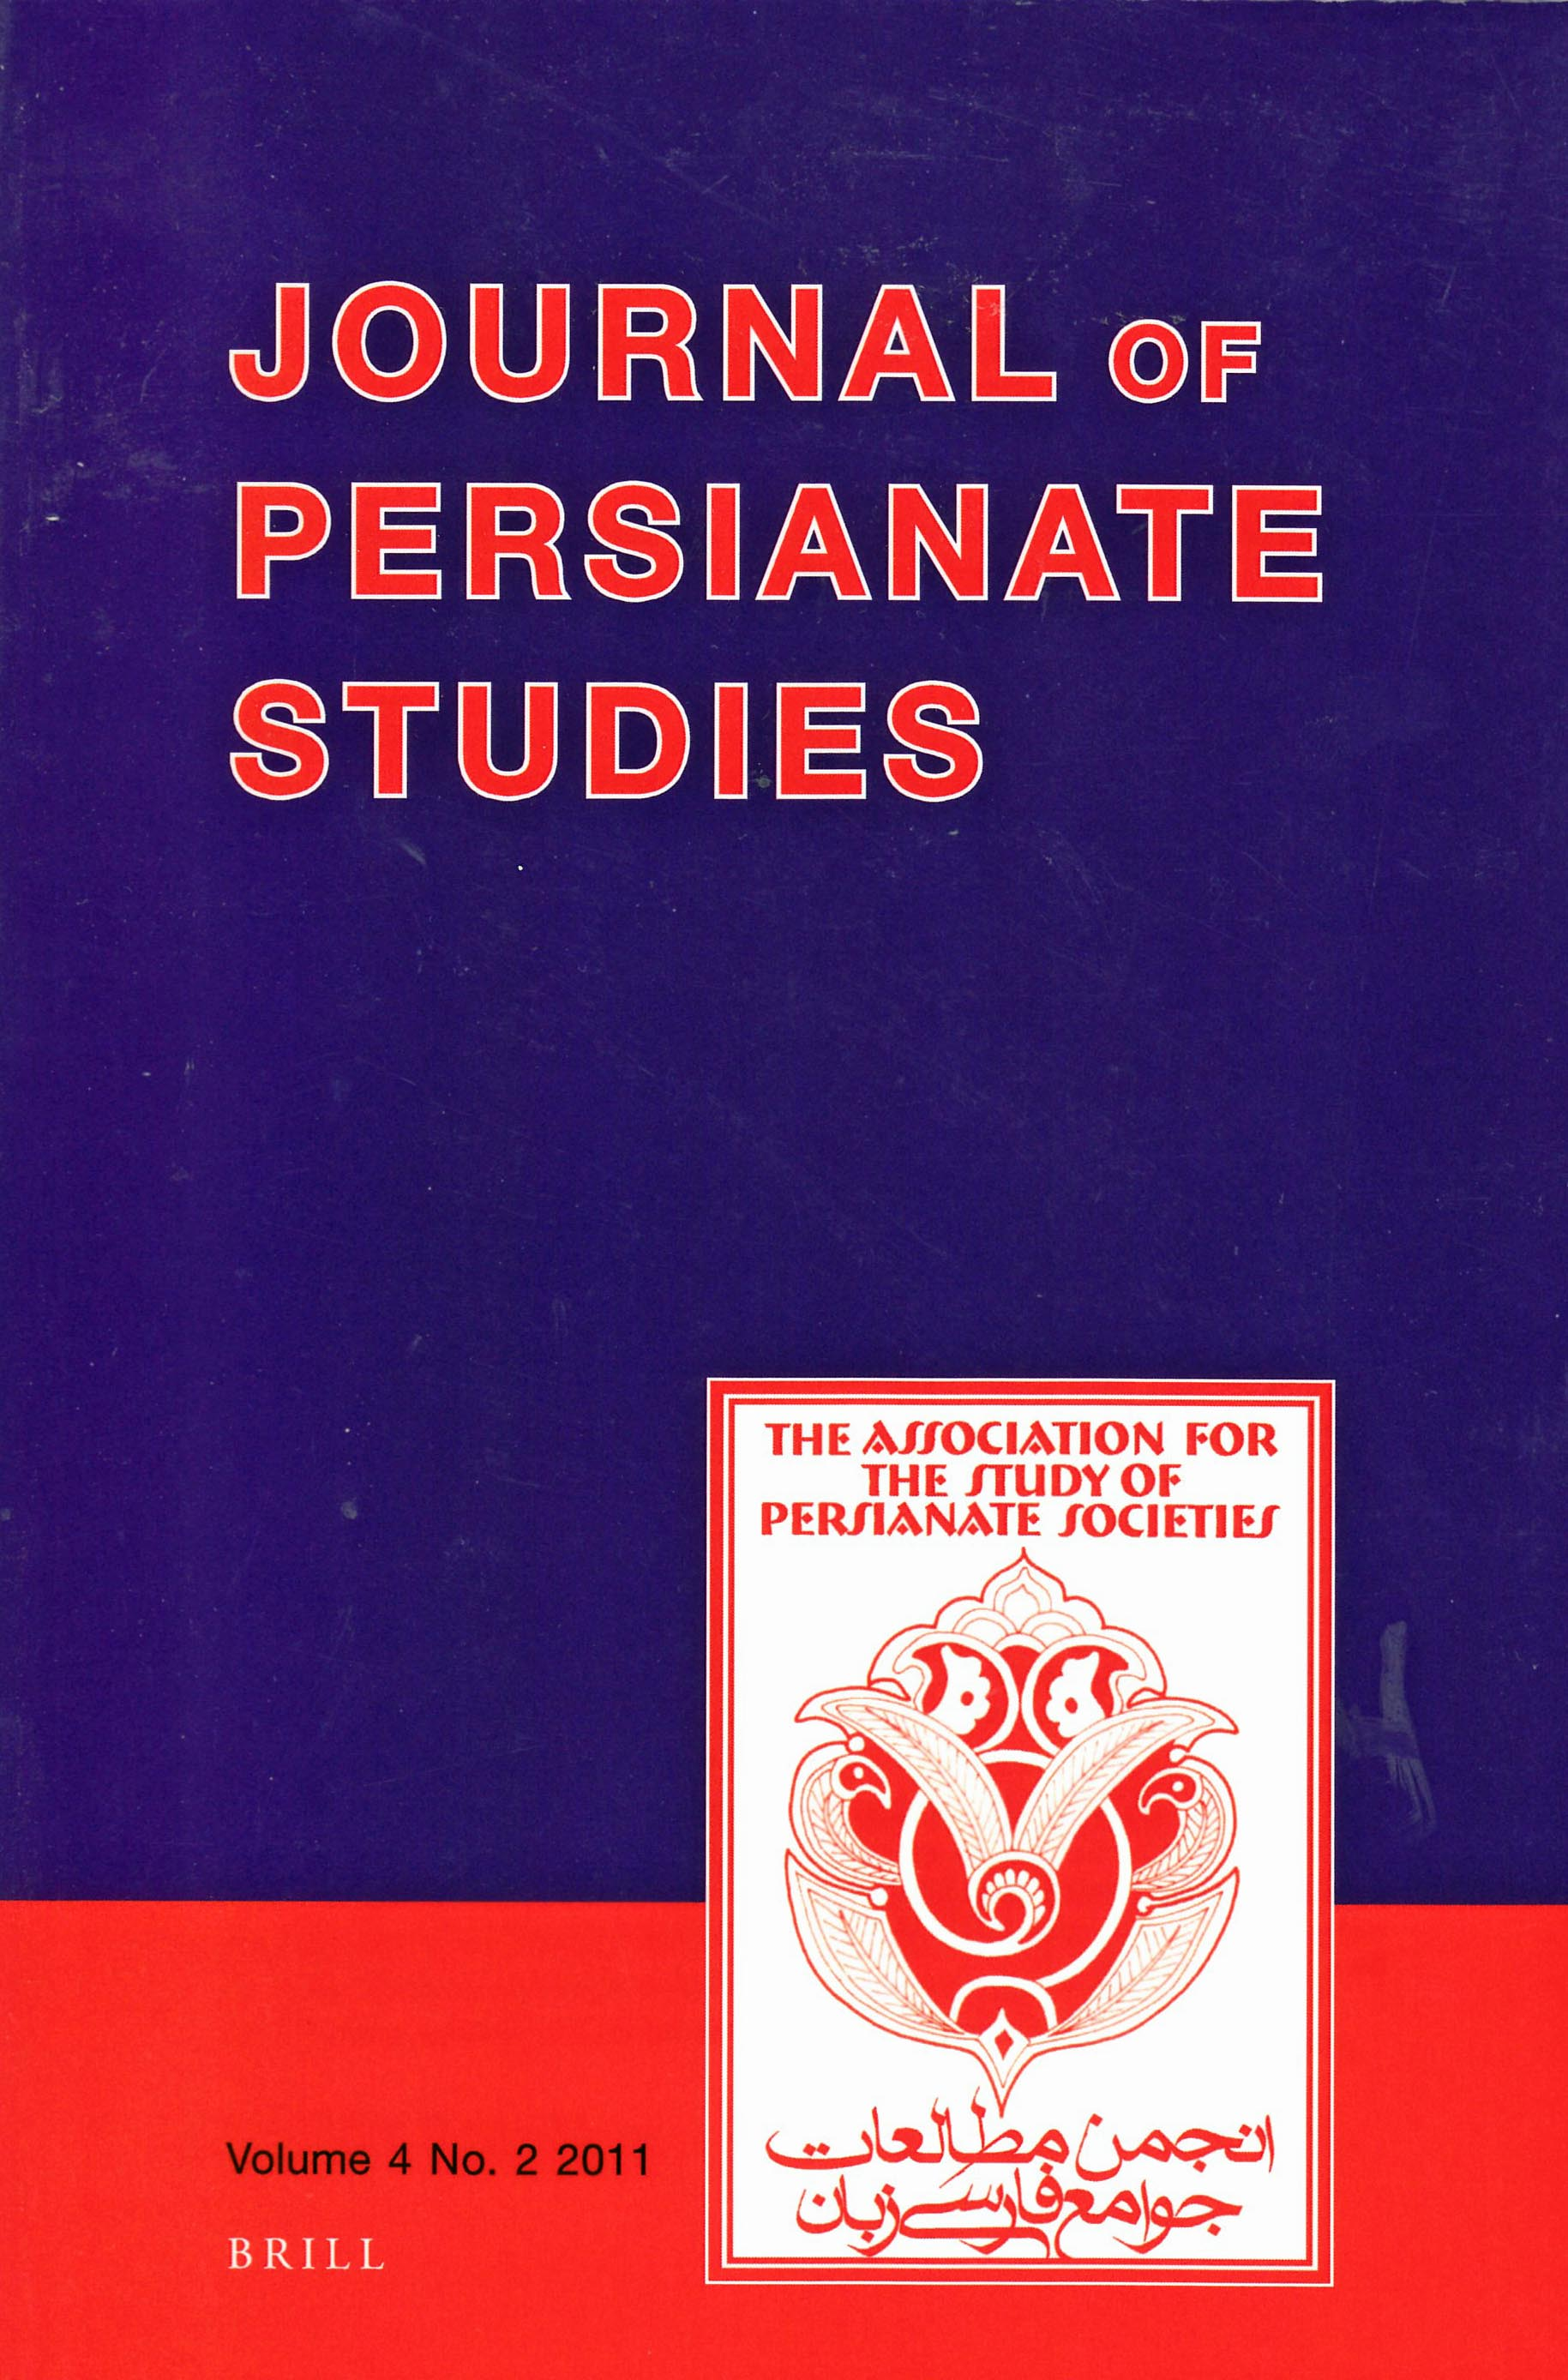 Journal of Persianate Studies, Volume 4, No. 2